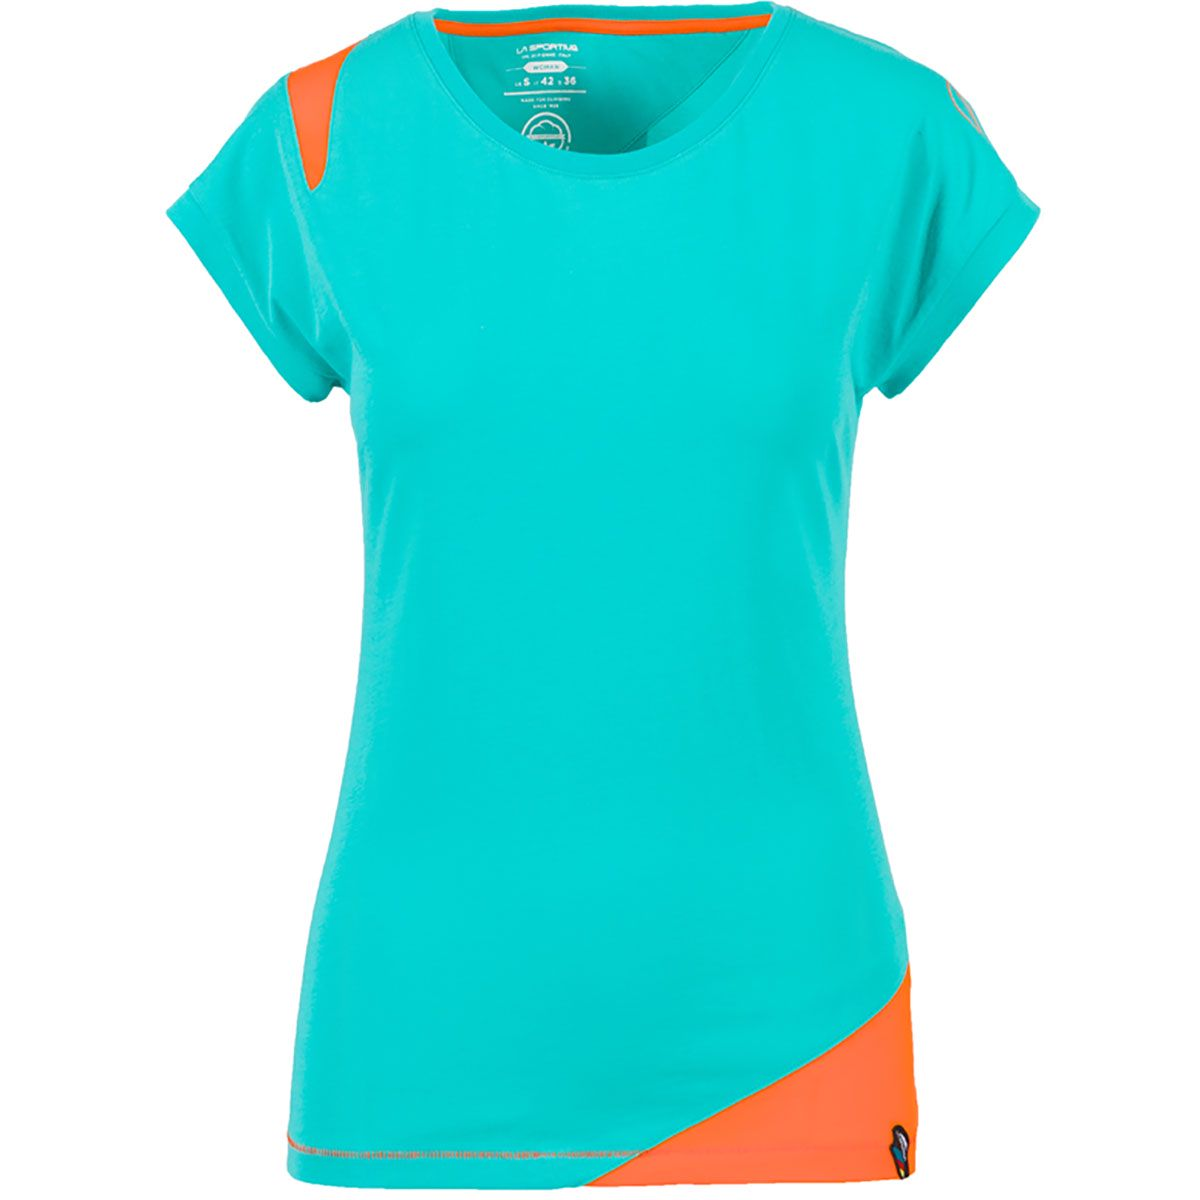 La Sportiva Damen Chimney T-Shirt (Größe S) | T-Shirts Freizeit > Damen